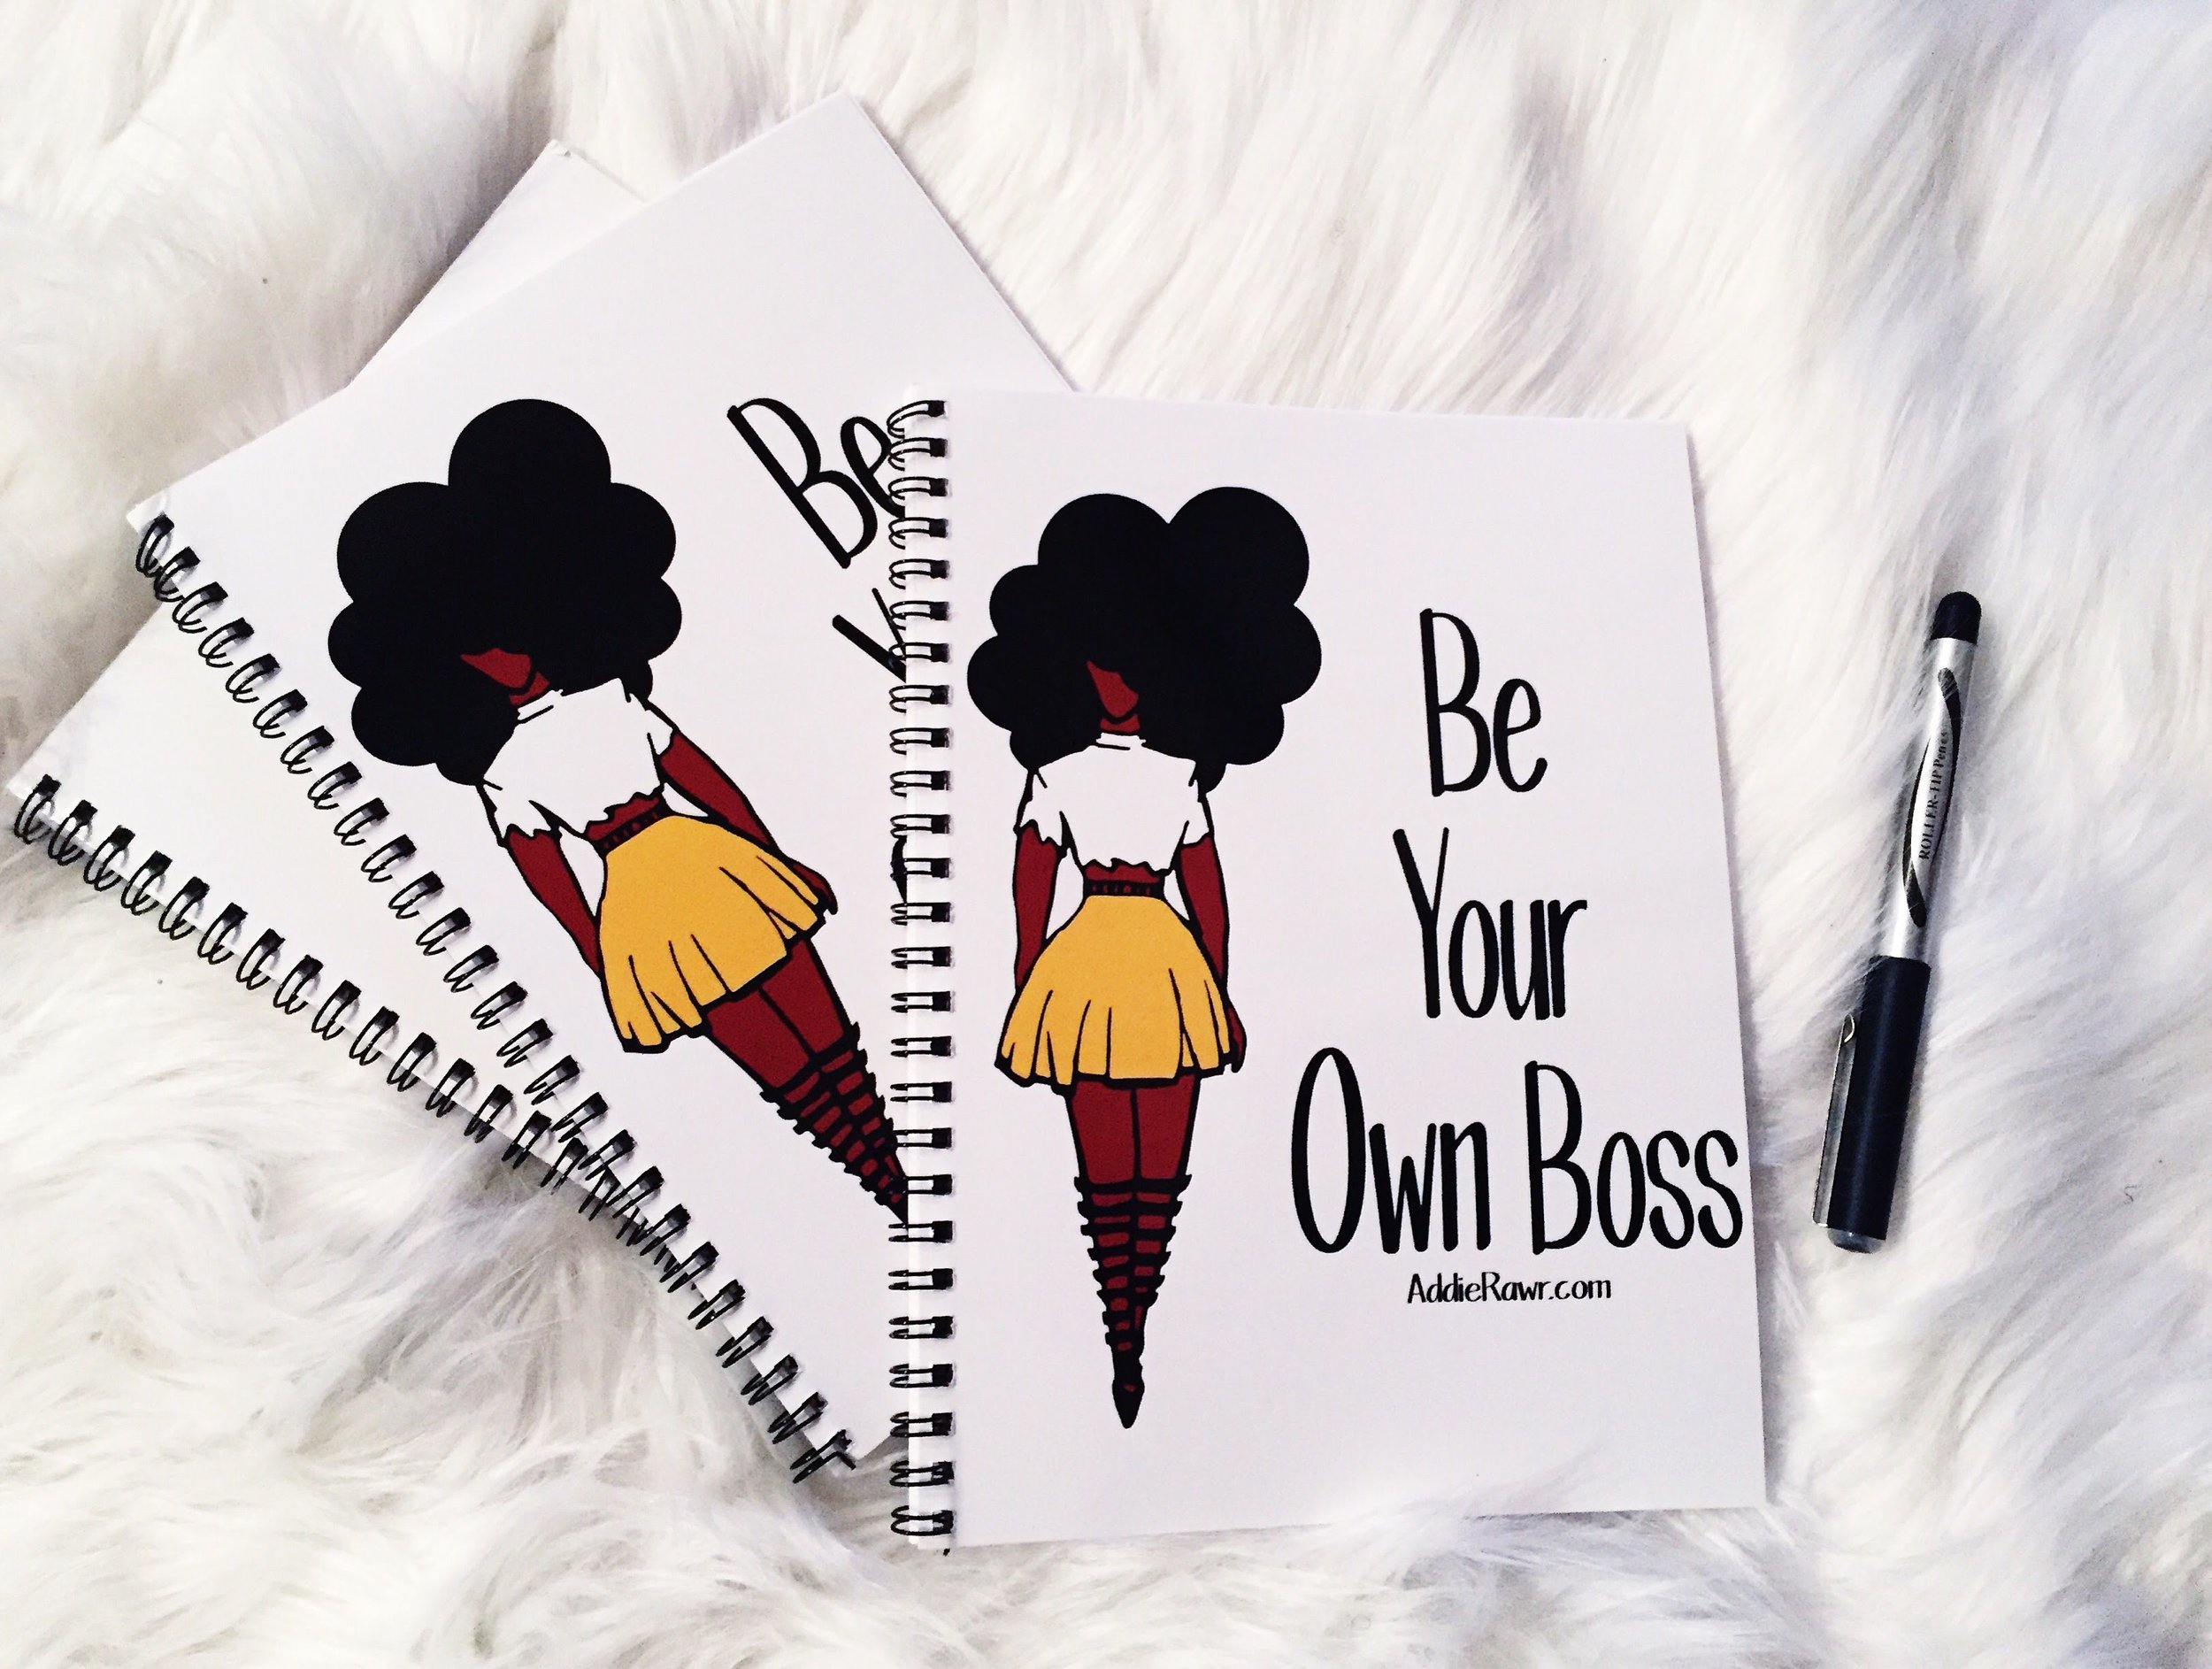 Be Your Own Boss Notebooks.jpg